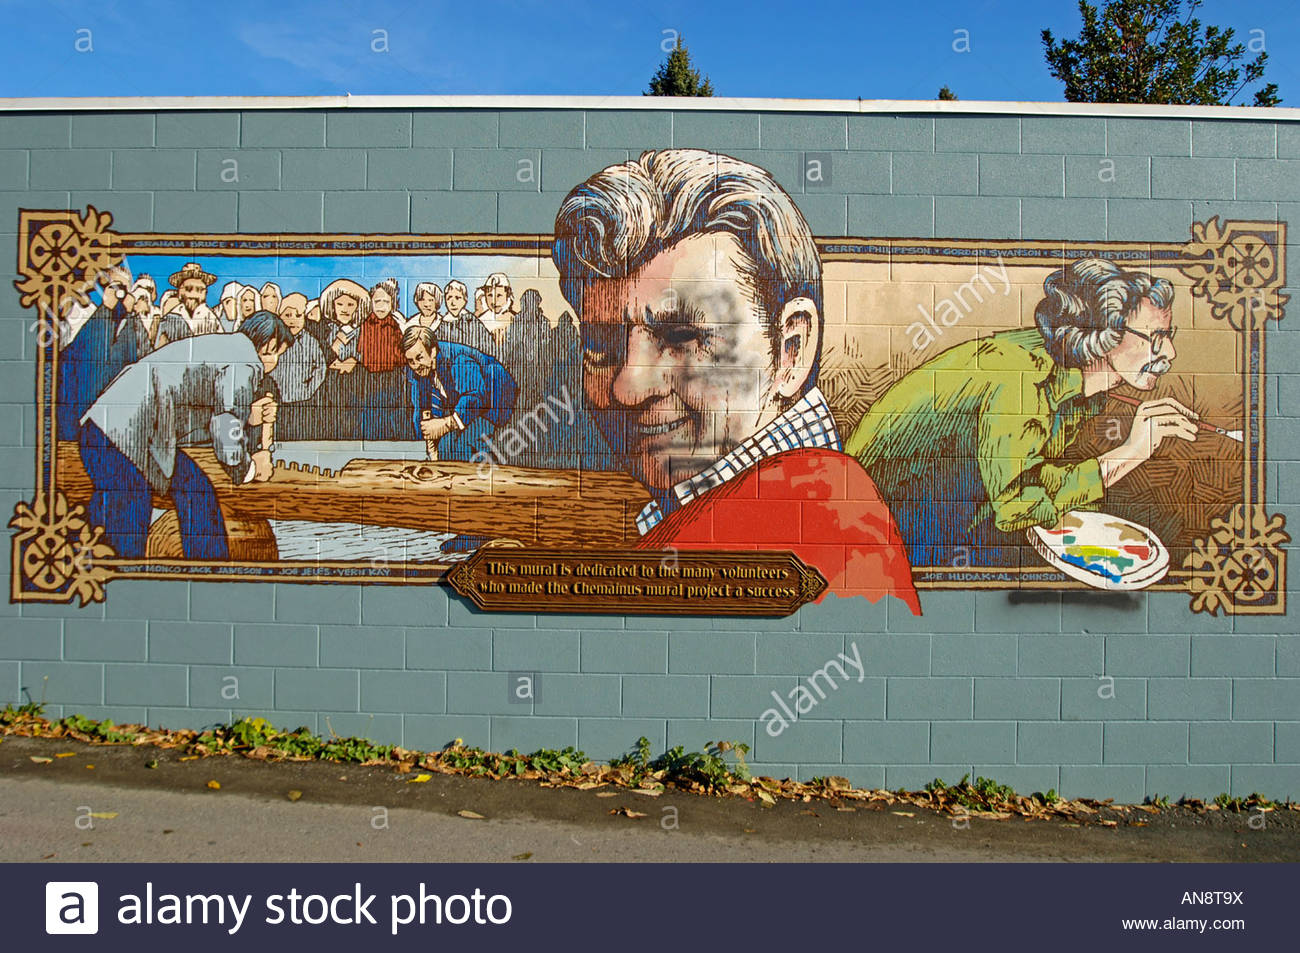 28 wall murals vancouver wall mural vancouver canada wall murals vancouver chemainus outdoor giant wall mural vancouver island